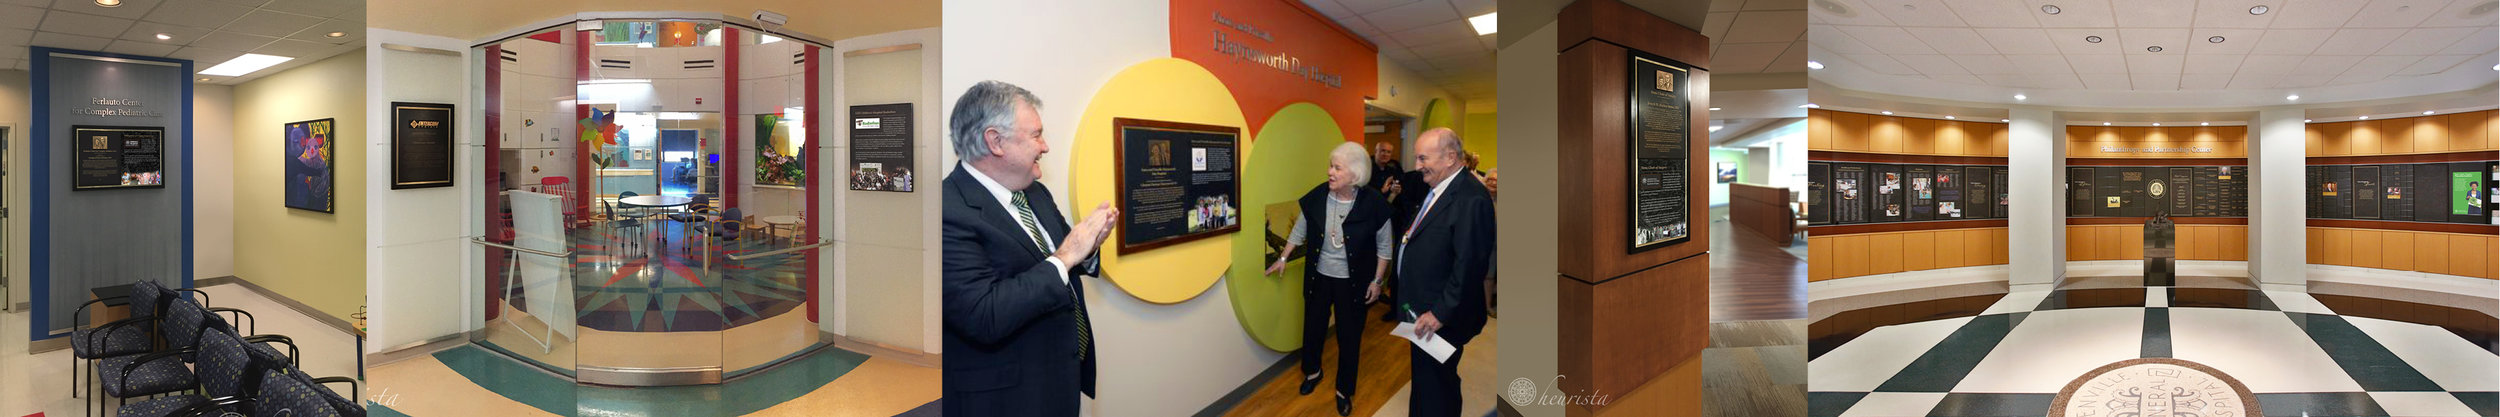 donor-recognition-greenville-health-system.jpg